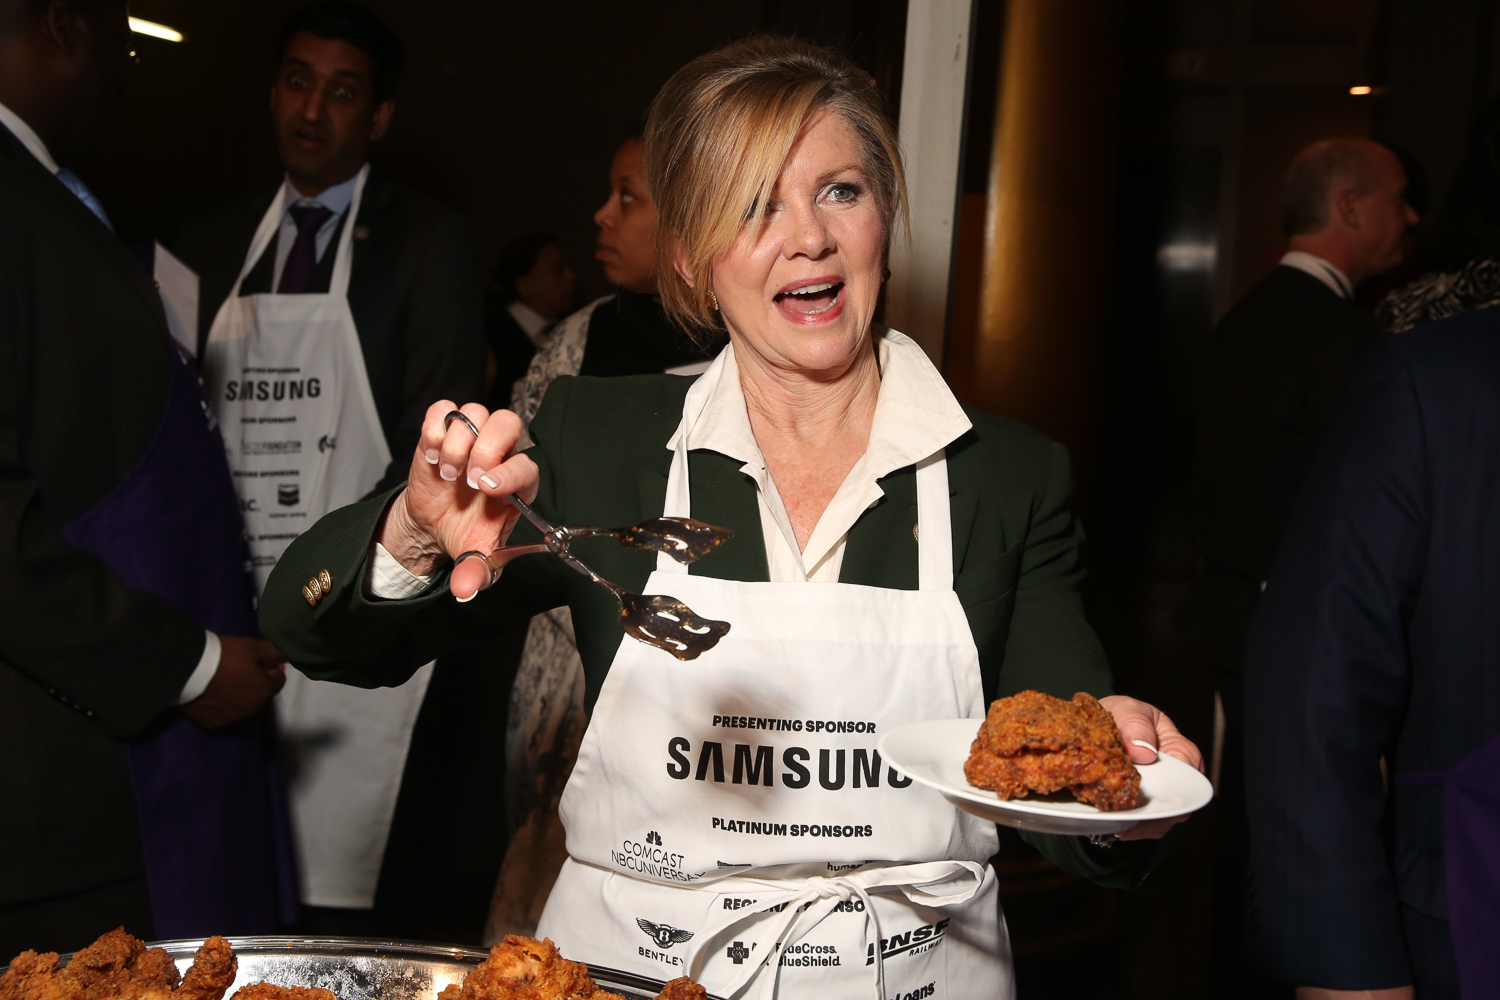 Rep. Marsha Blackburn, whose hot chicken won the people's choice award. (Amanda Andrade-Rhoades/DC Refined)